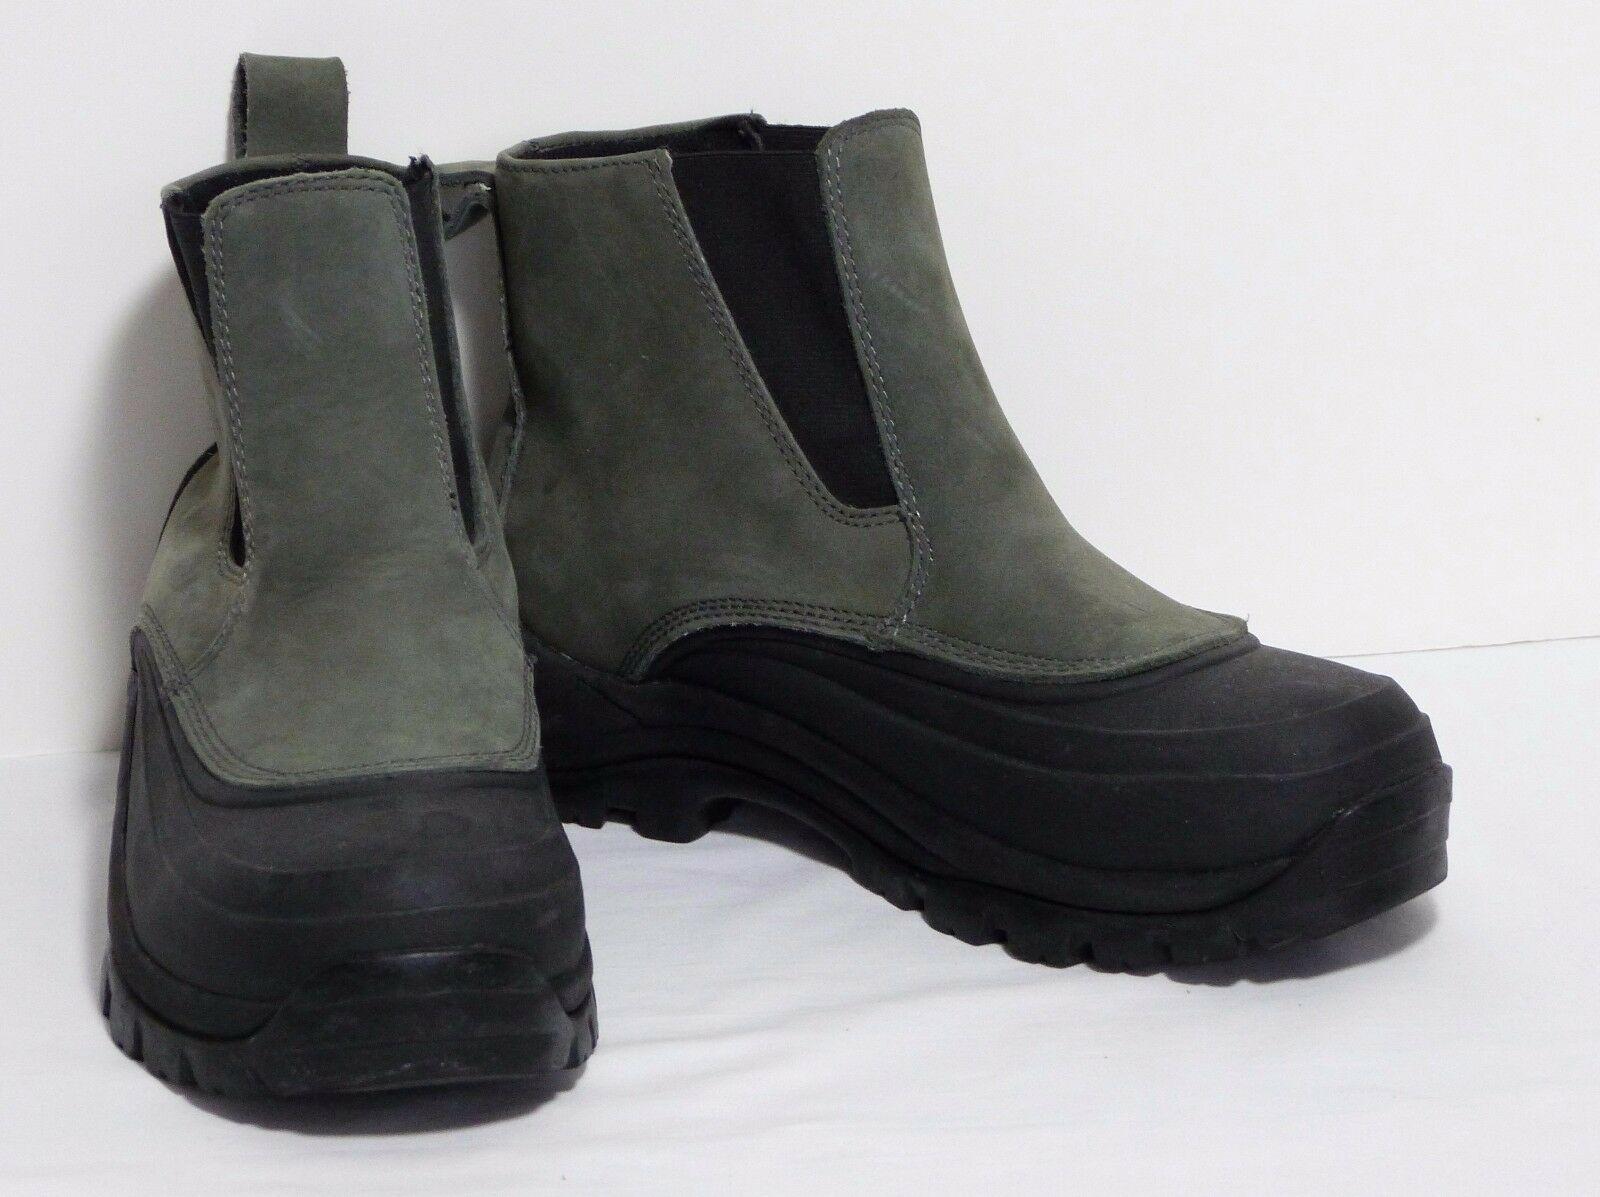 Lands End Waterproof Snow Boots Women's Black Rubber w/Green Suede Women's Boots 7 US VGC 77cdc2